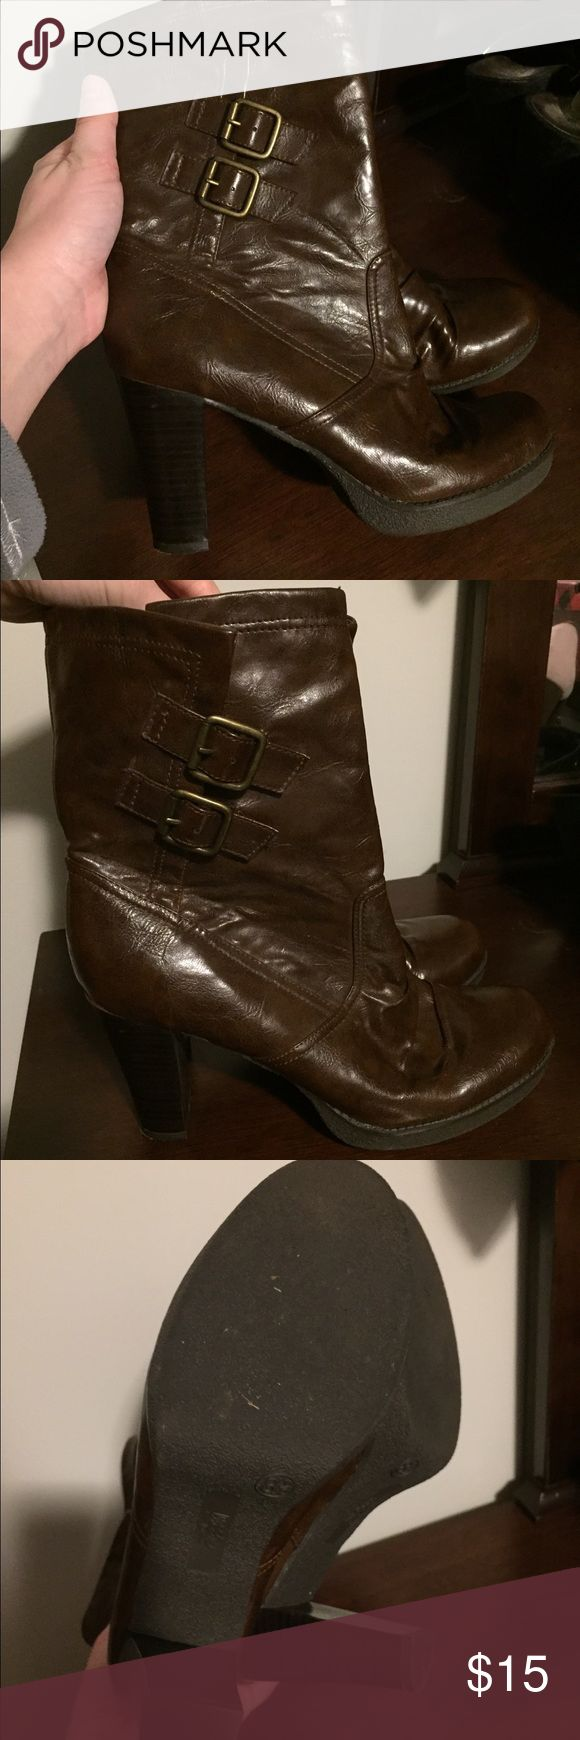 Mossimo brown heeled boots Slip on heeled boots. Mossimo brand. Worn twice. Size 8 1/2 Mossimo Supply Co Shoes Combat & Moto Boots